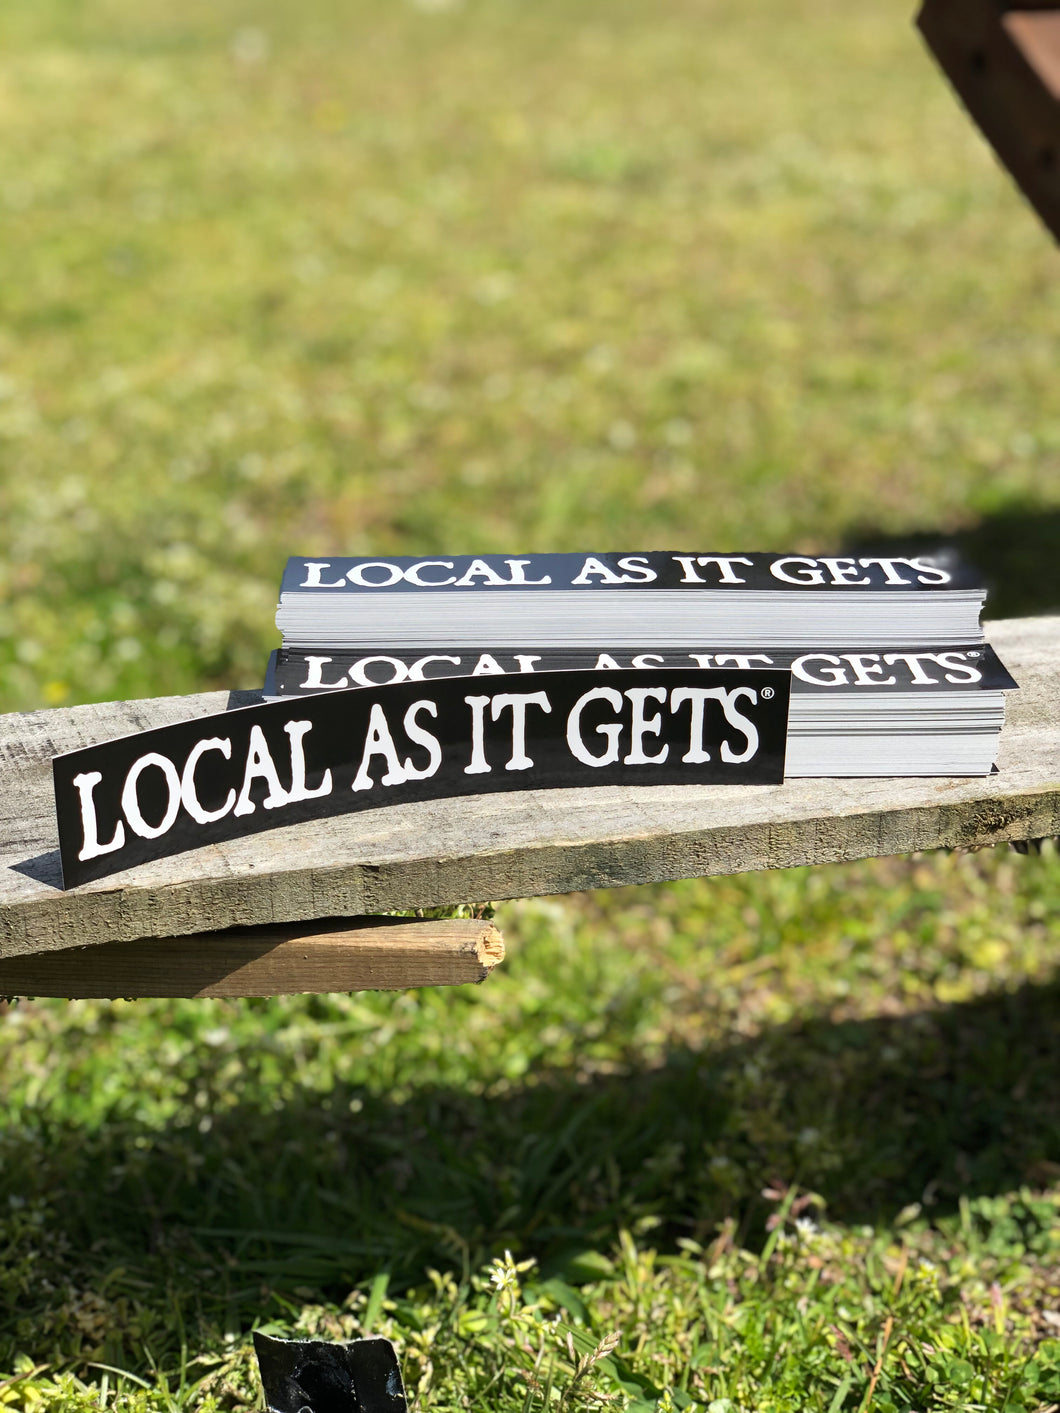 Original Local As It Gets sticker